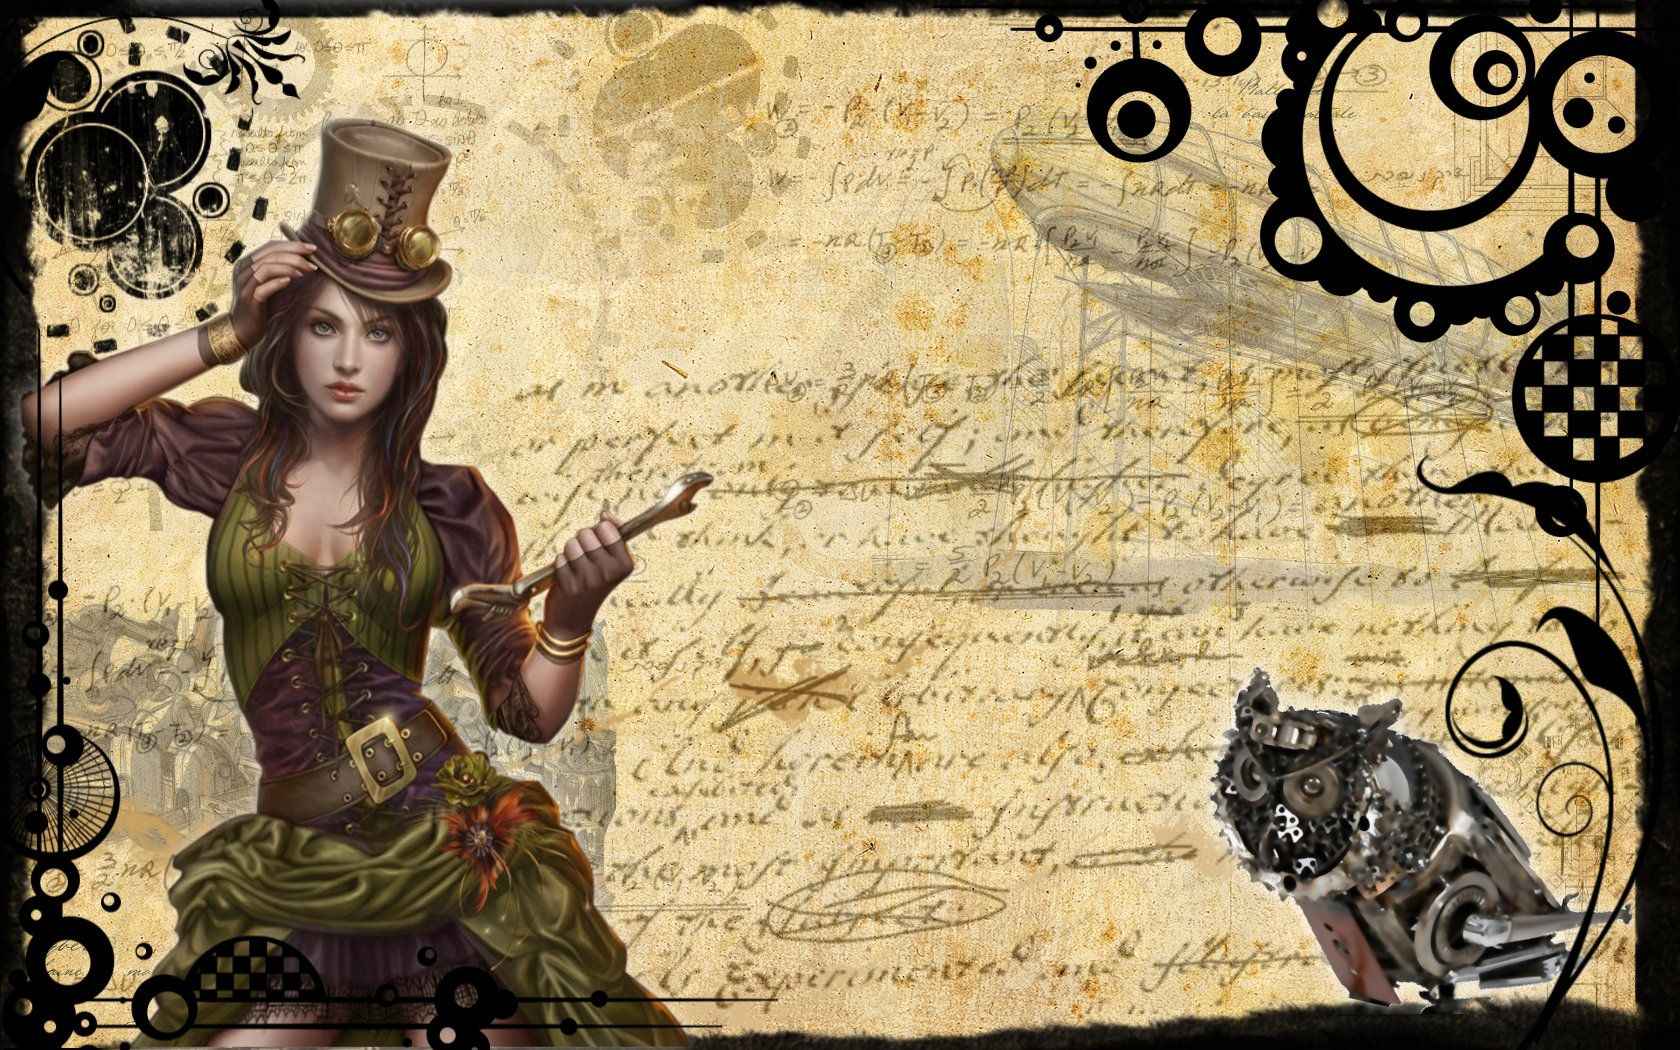 Miscellaneous Steampunk 1 desktop wallpaper nr 59257 by mc00078 1680x1050